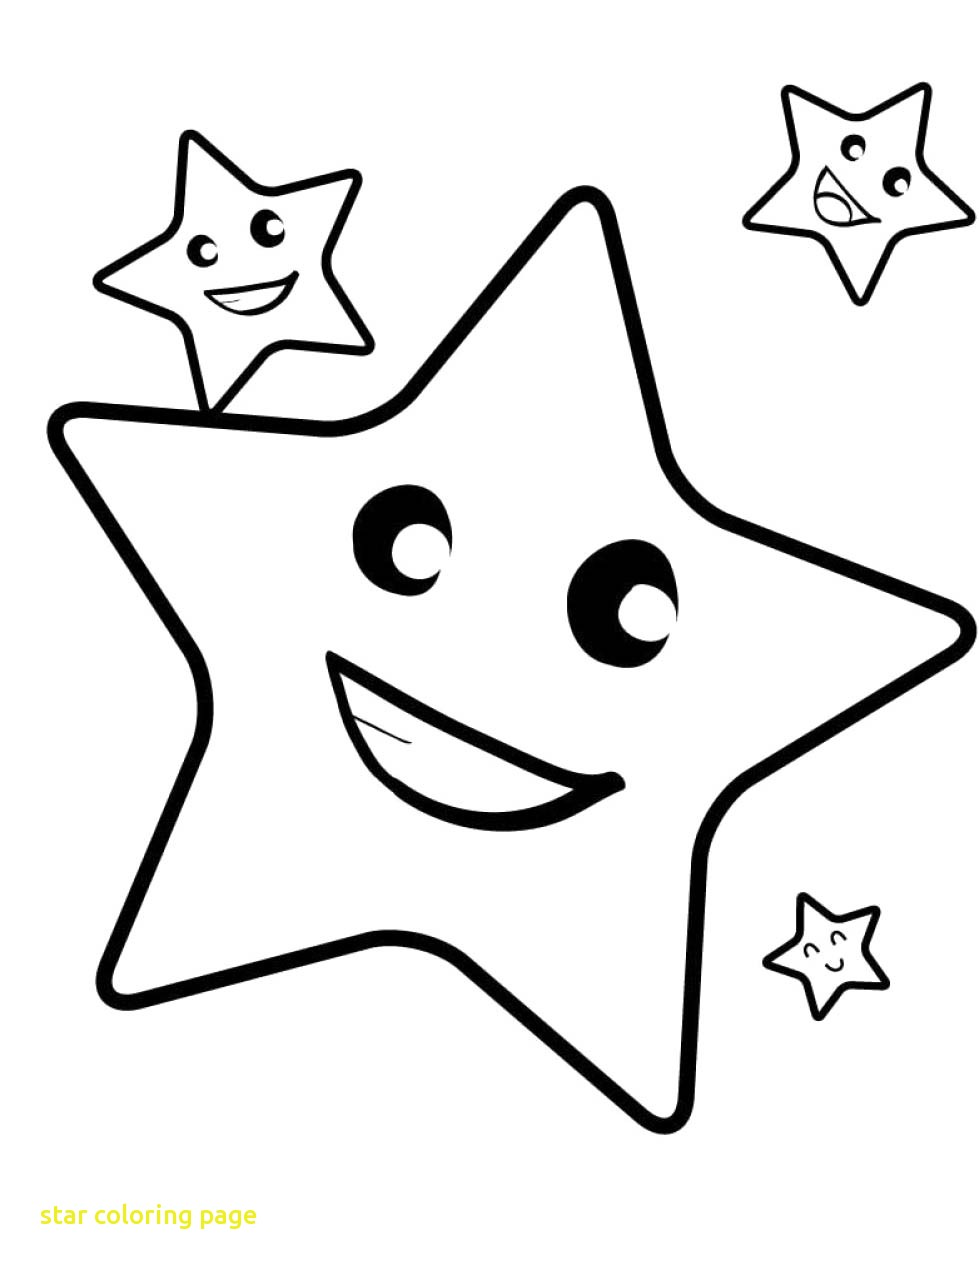 979x1272 Astonishing Decoration Stars Coloring Pages Star For Preschoolers